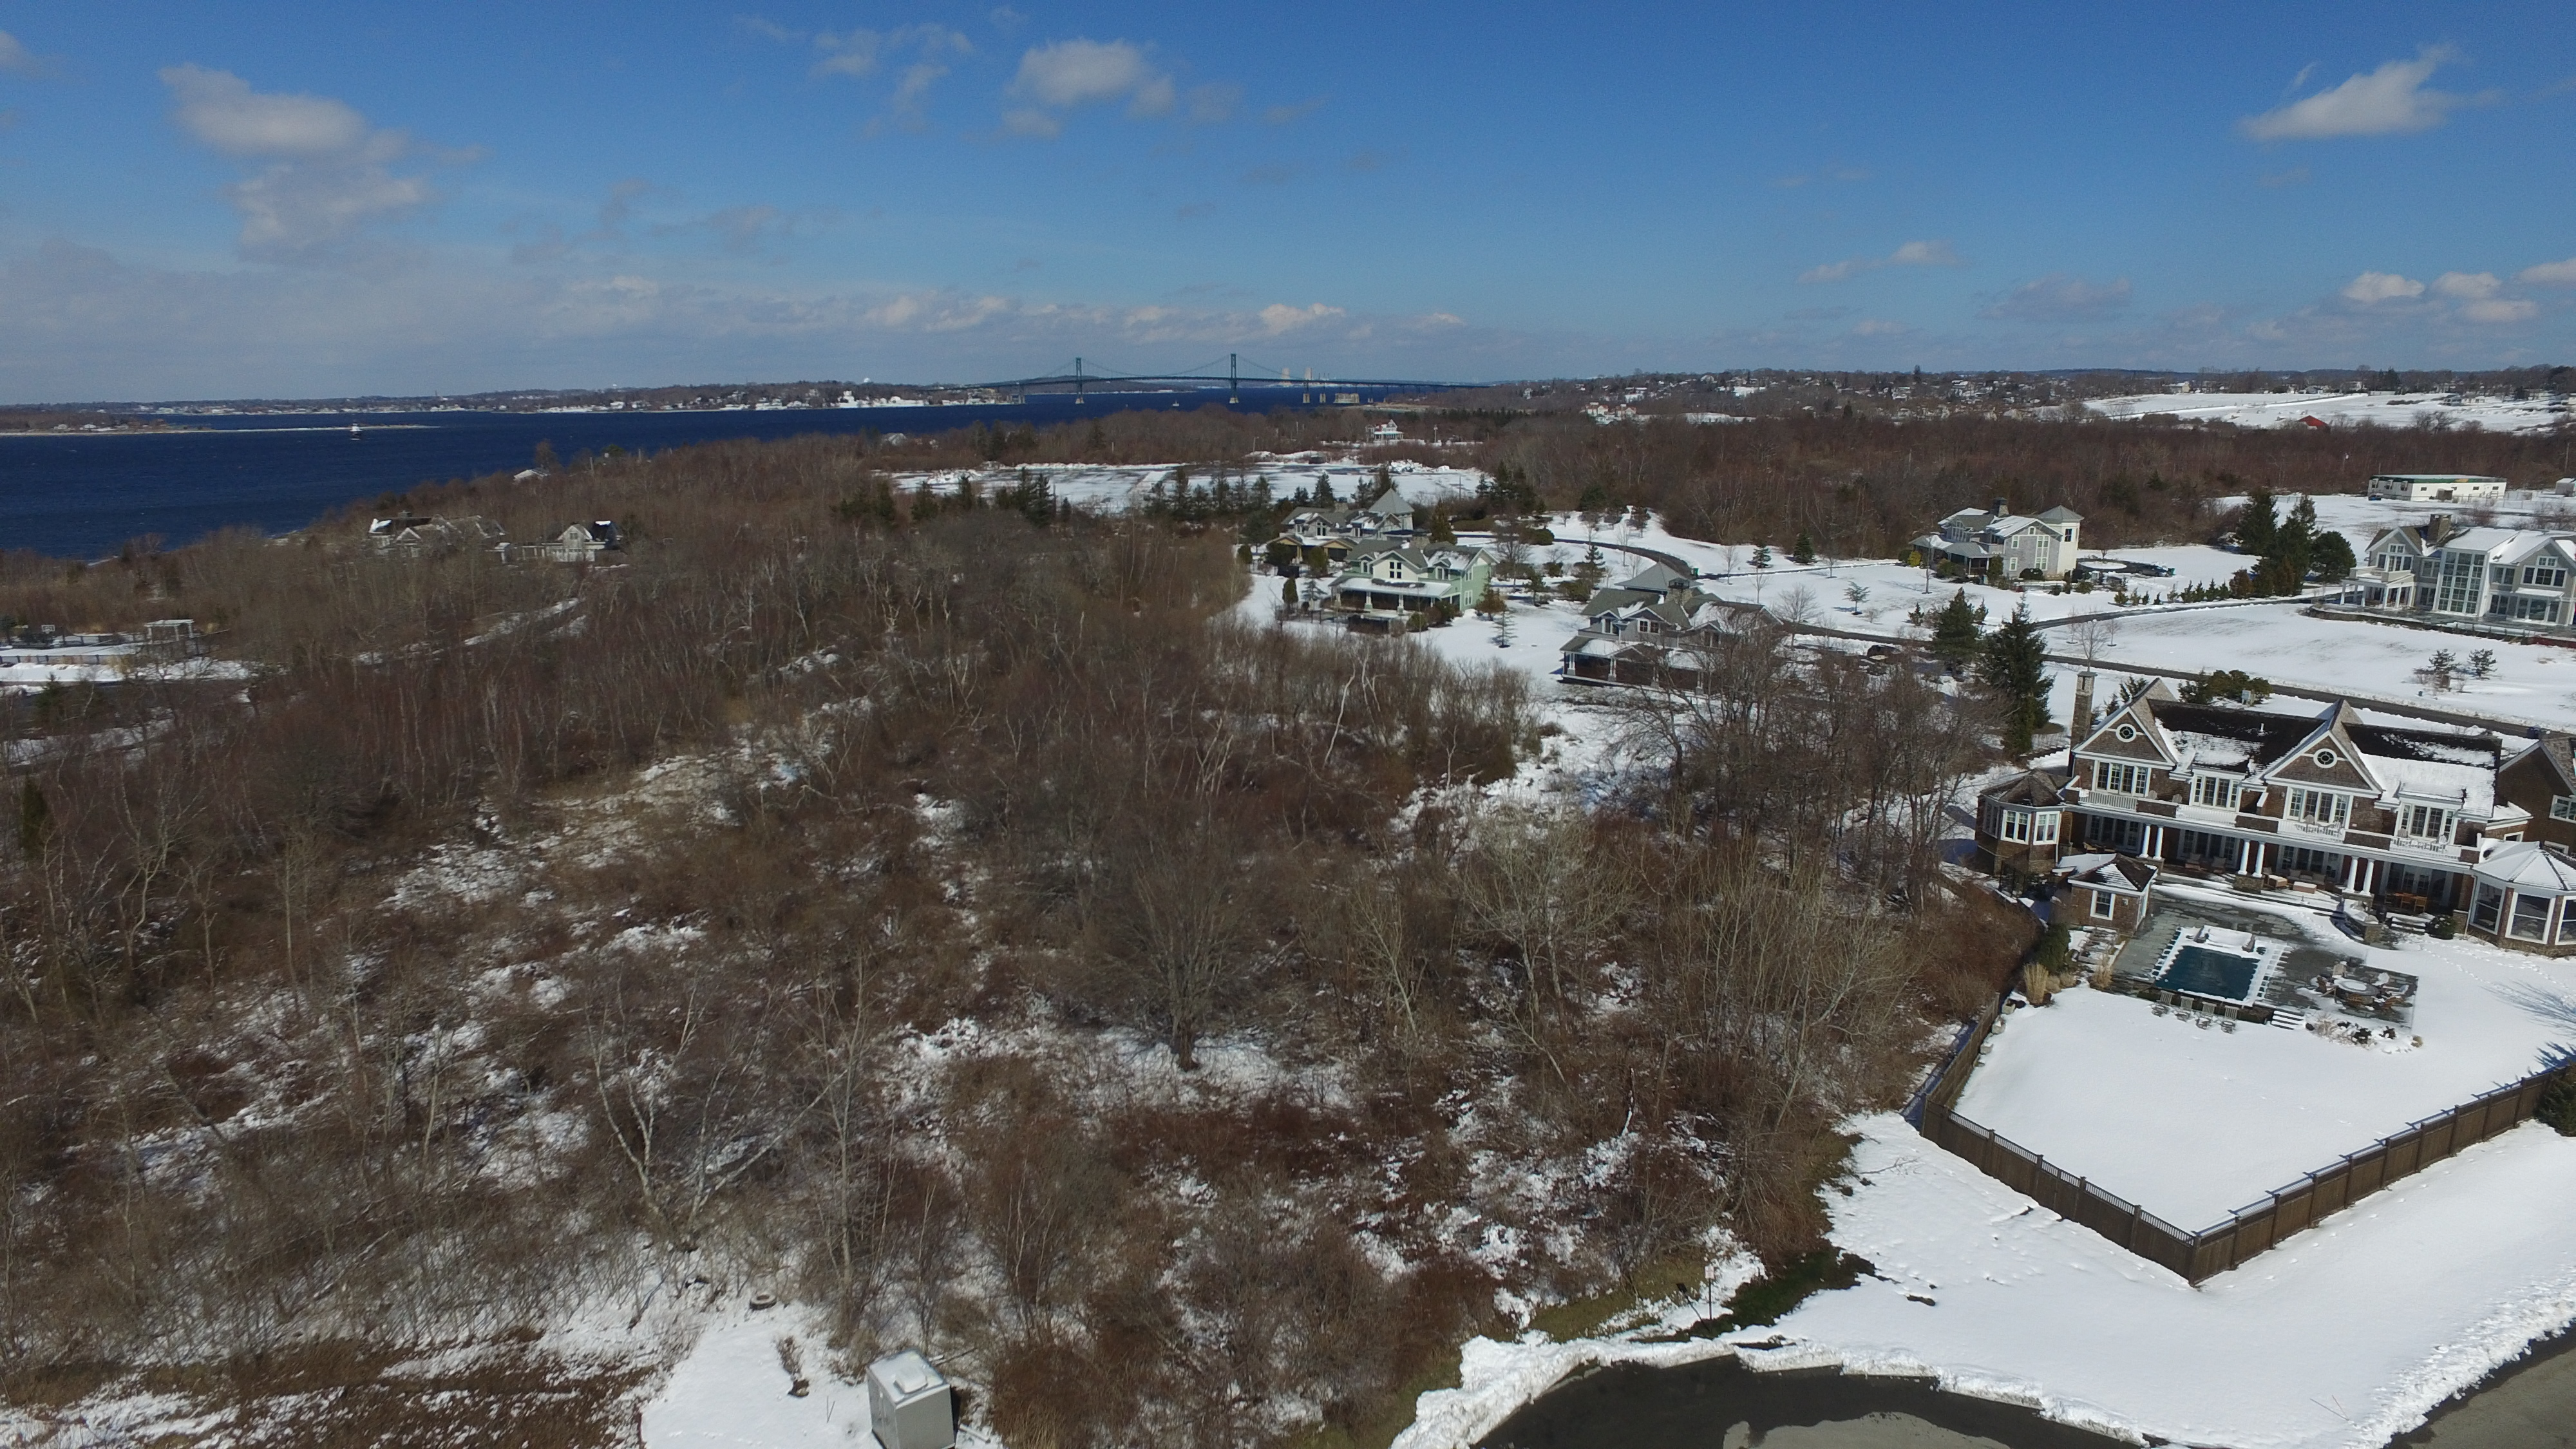 Sky Drone 12 over Portsmouth looking north toward the Mount Hope Bridge.